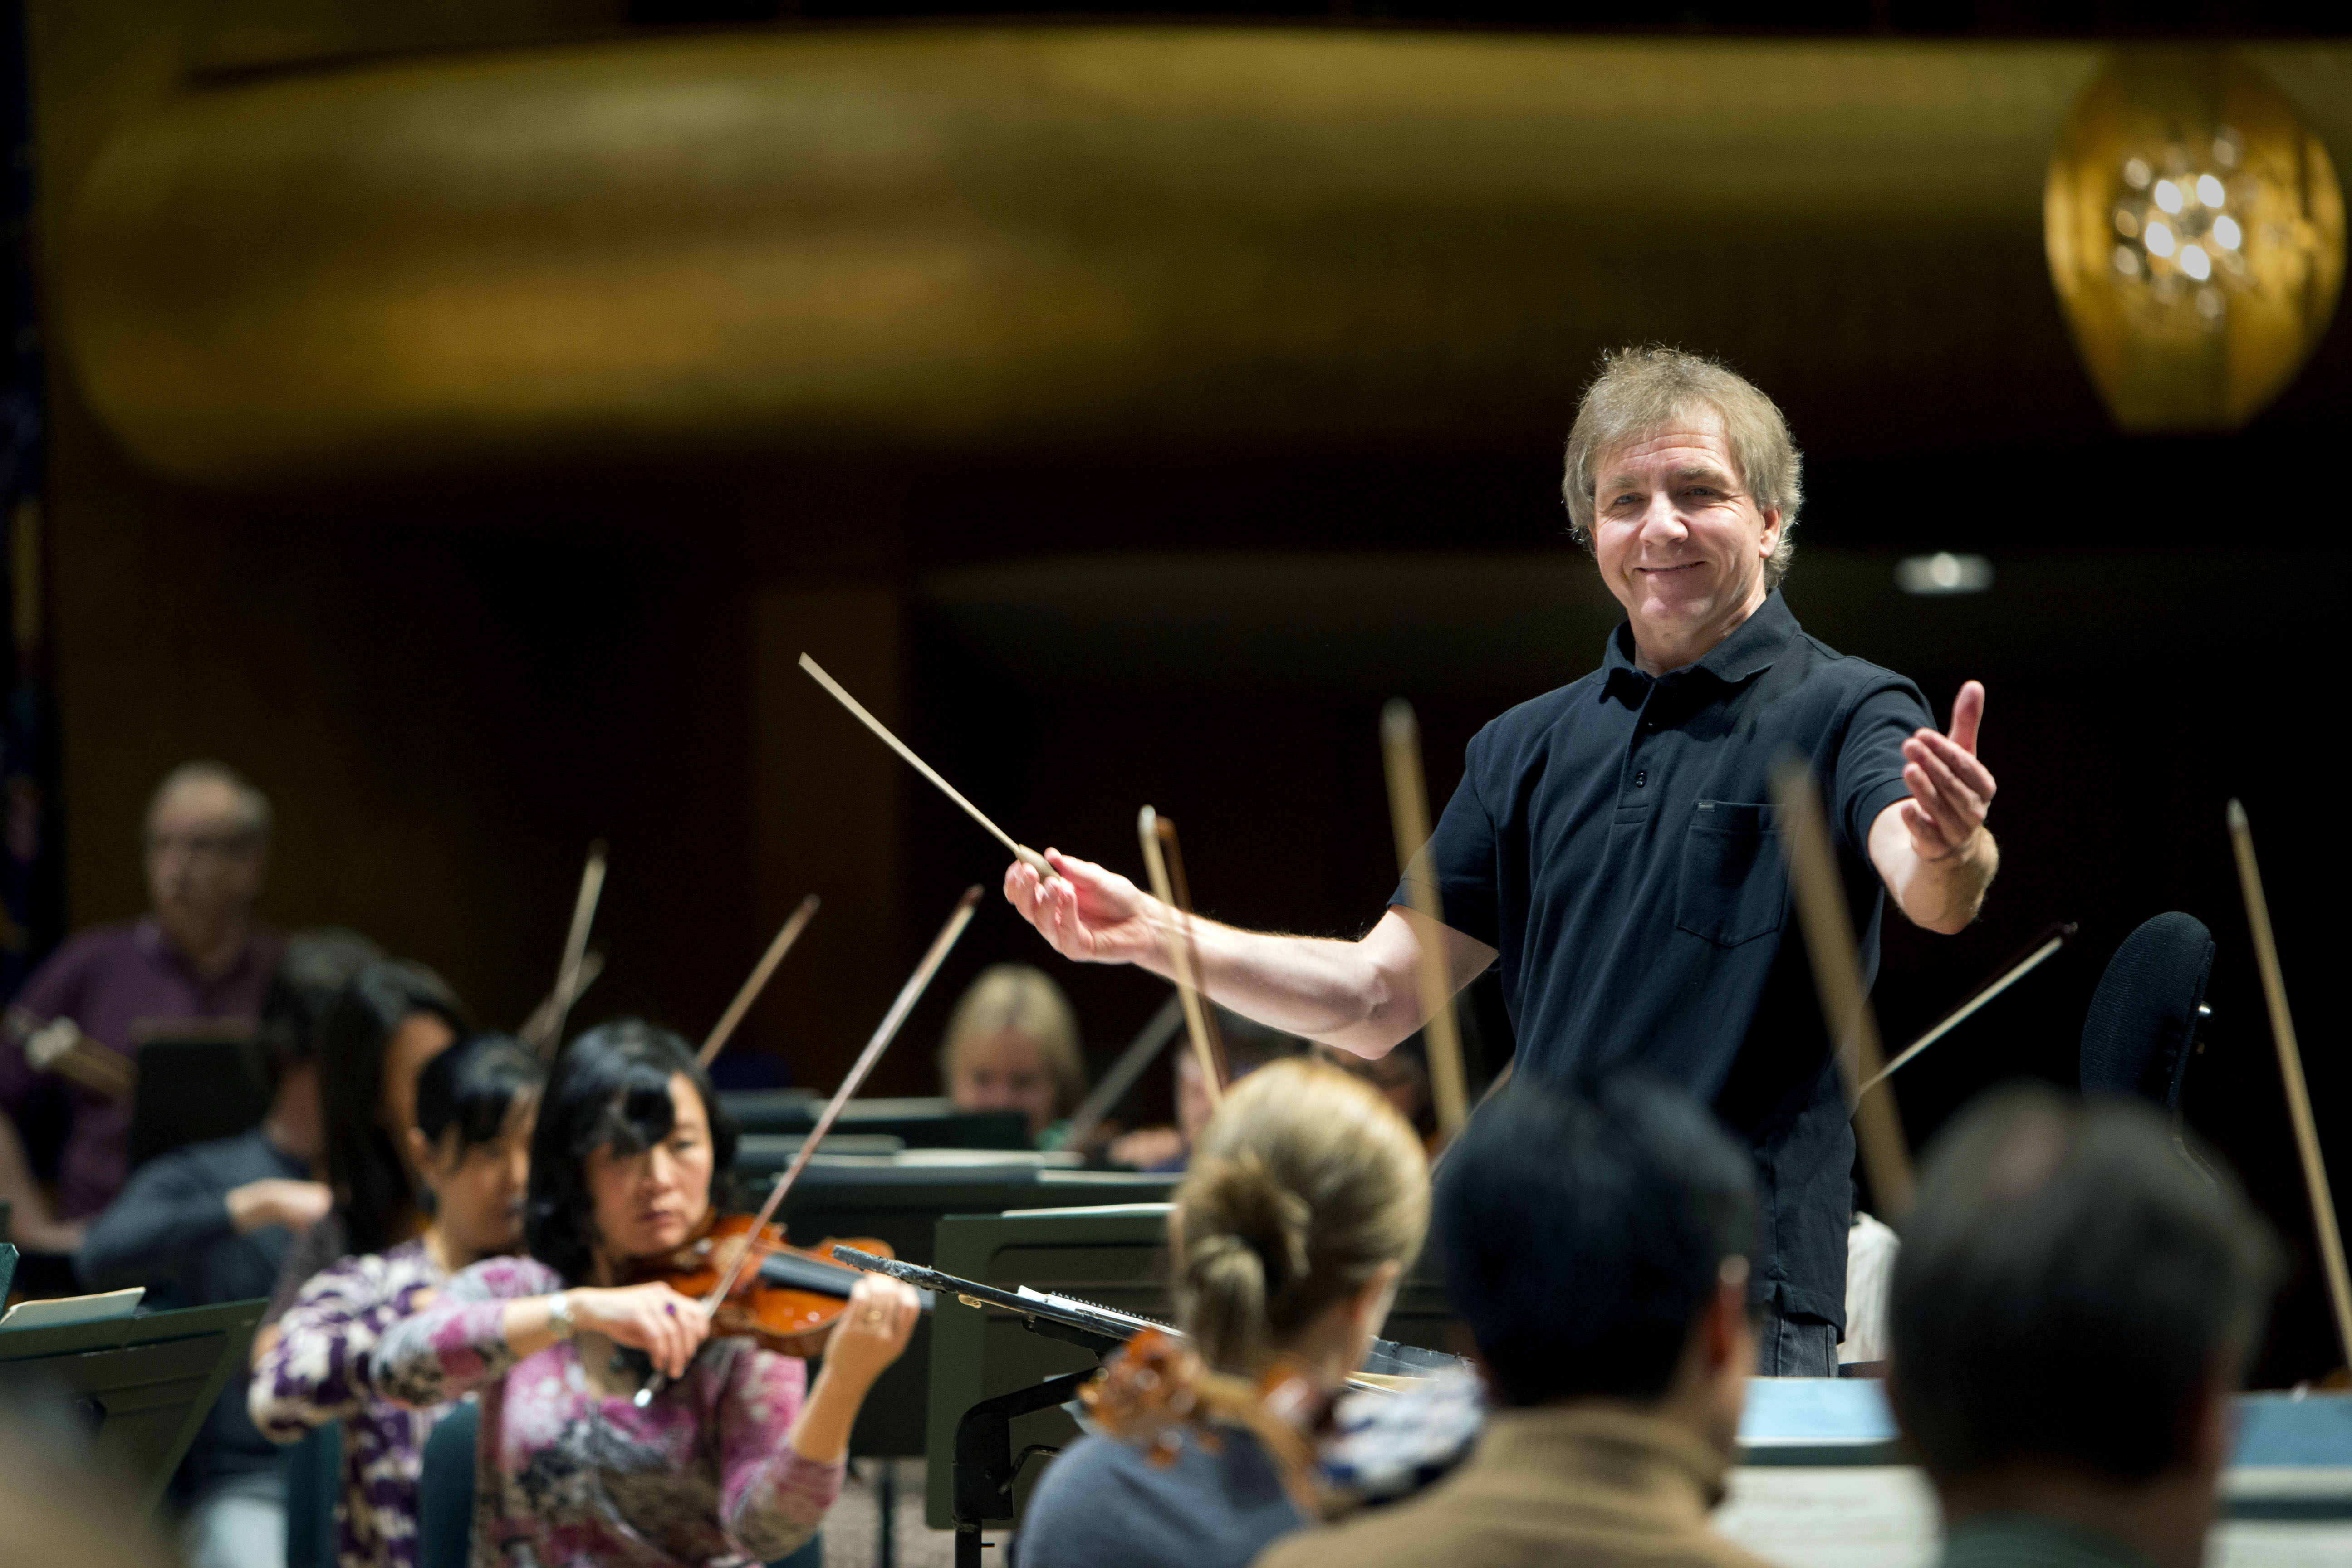 Thierry Fischer, music director of the Utah Symphony, conducts a practice with the symphony at Abravanel Hall in Salt Lake City on Wednesday, Nov. 20, 2013. After being shut down due to COVID-19, Abravanel Hall is reopening to the public on March 25.